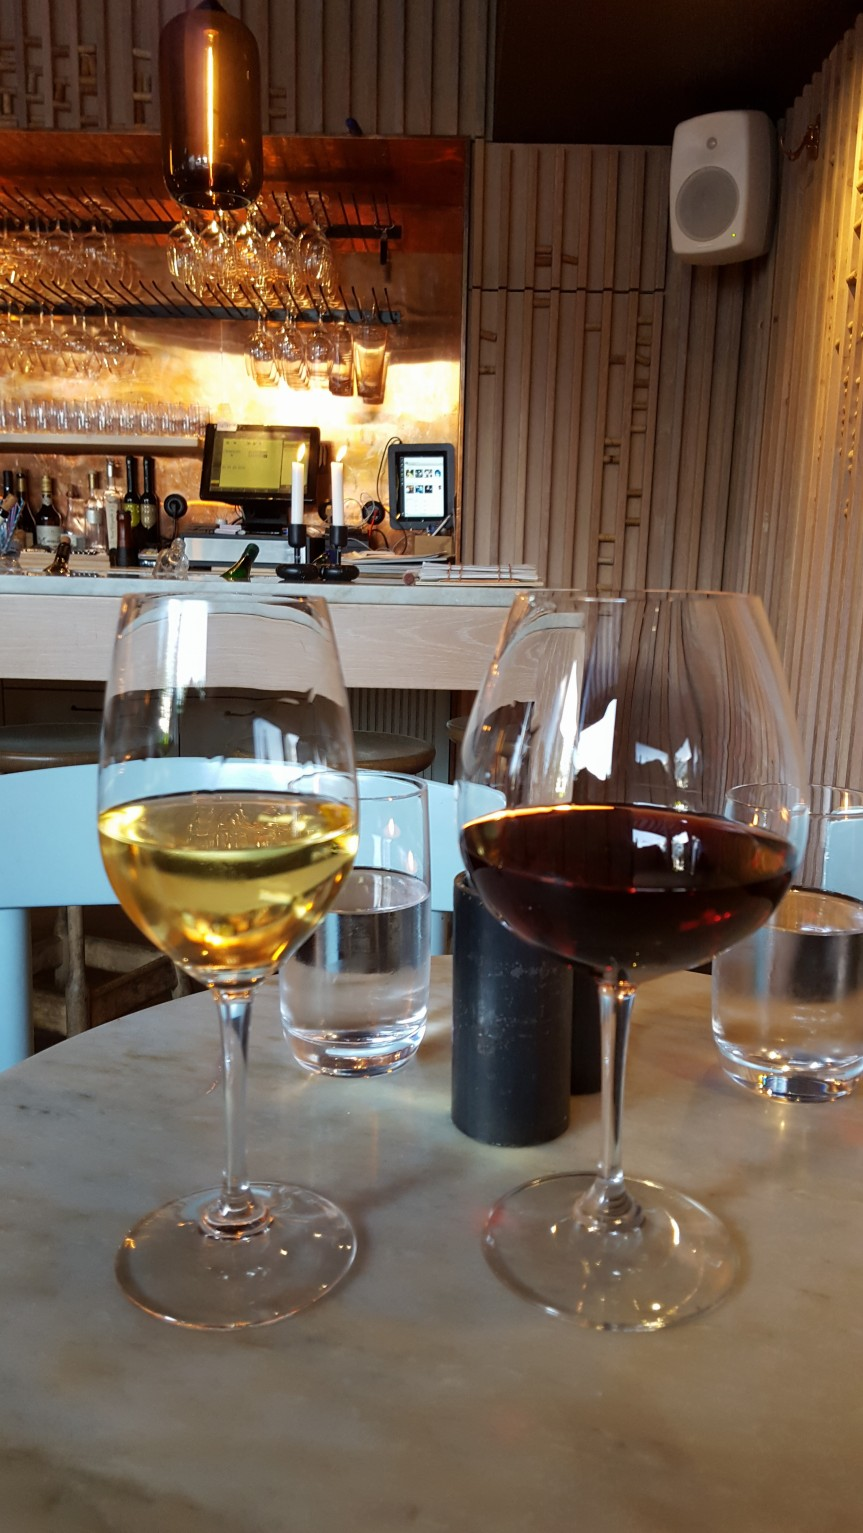 Wineweek 29: The Last Stretch Before theSummer